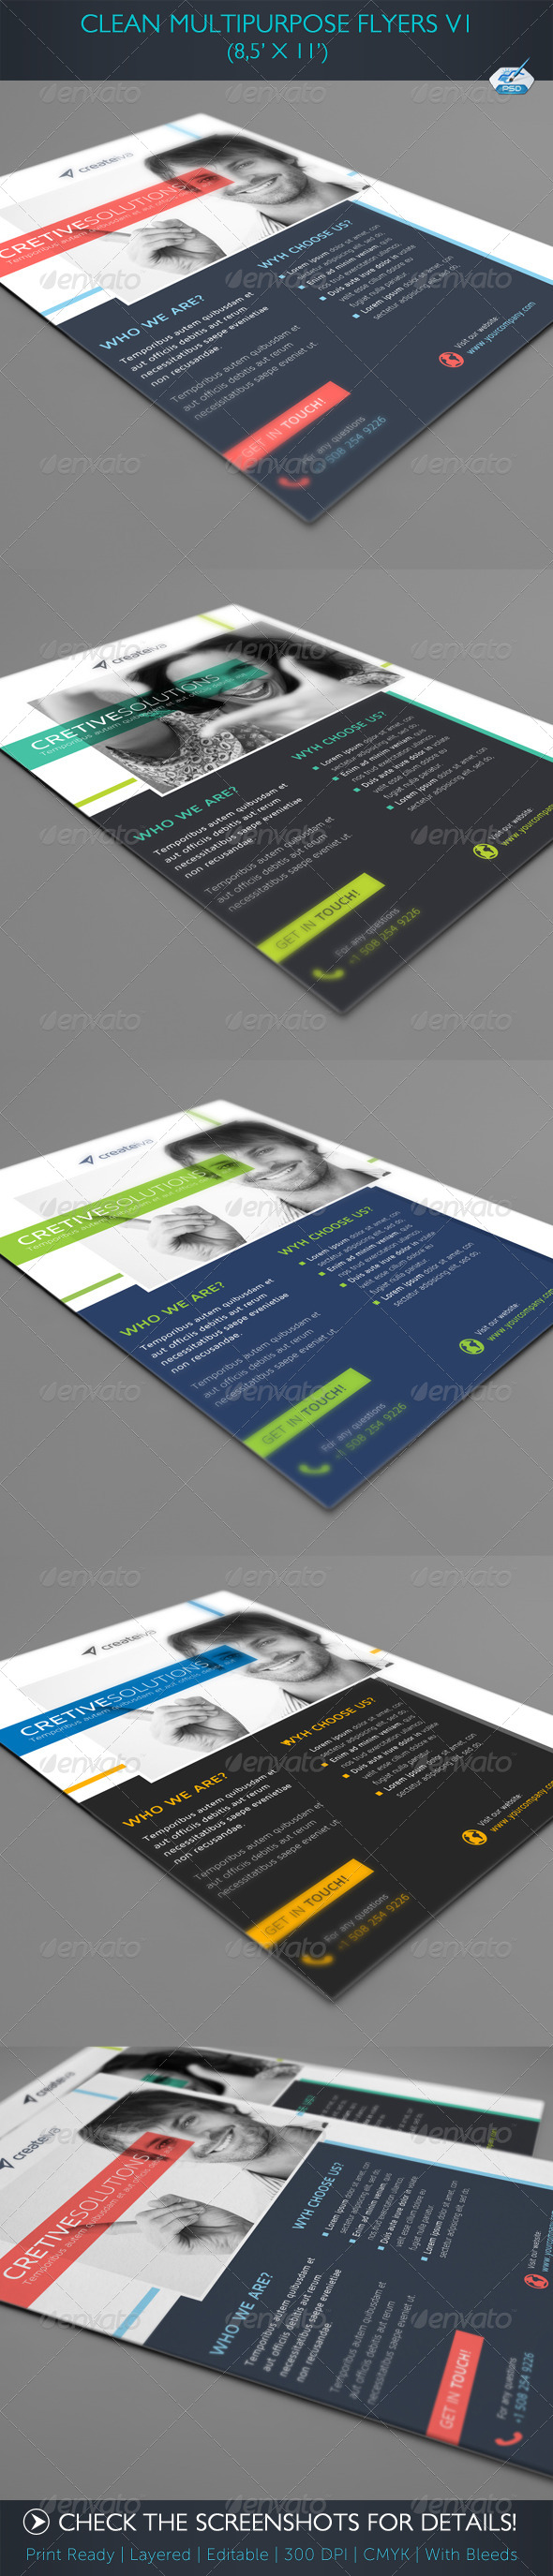 Clean Multipurpose Flyers Vol1 - Corporate Flyers